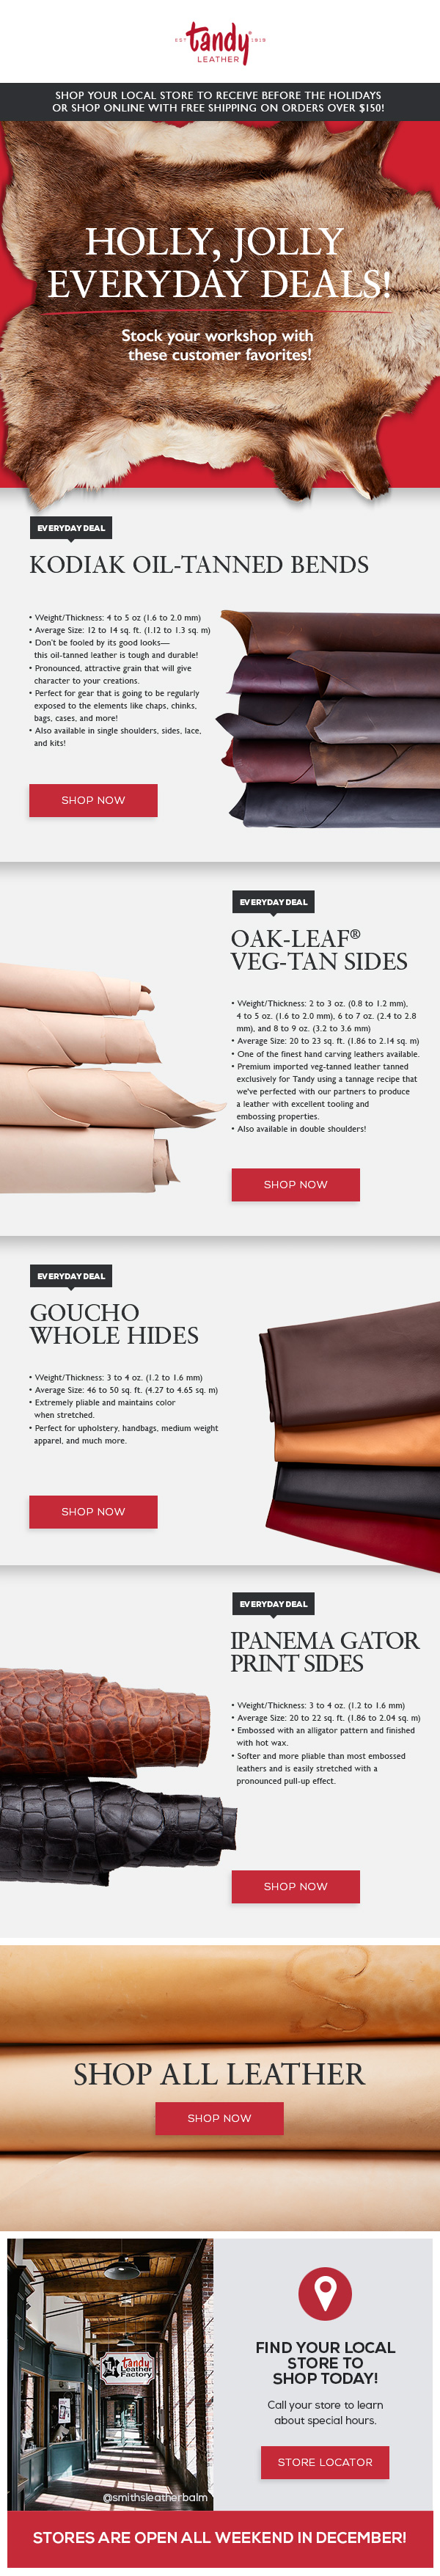 tandy leather, leather and hides, leather company, retail emails, email design, coding emails, Website Design, complex website, wordpress site, digital design, website designer, mobile designer, responsive design, mobile-first design, animated gif, animation